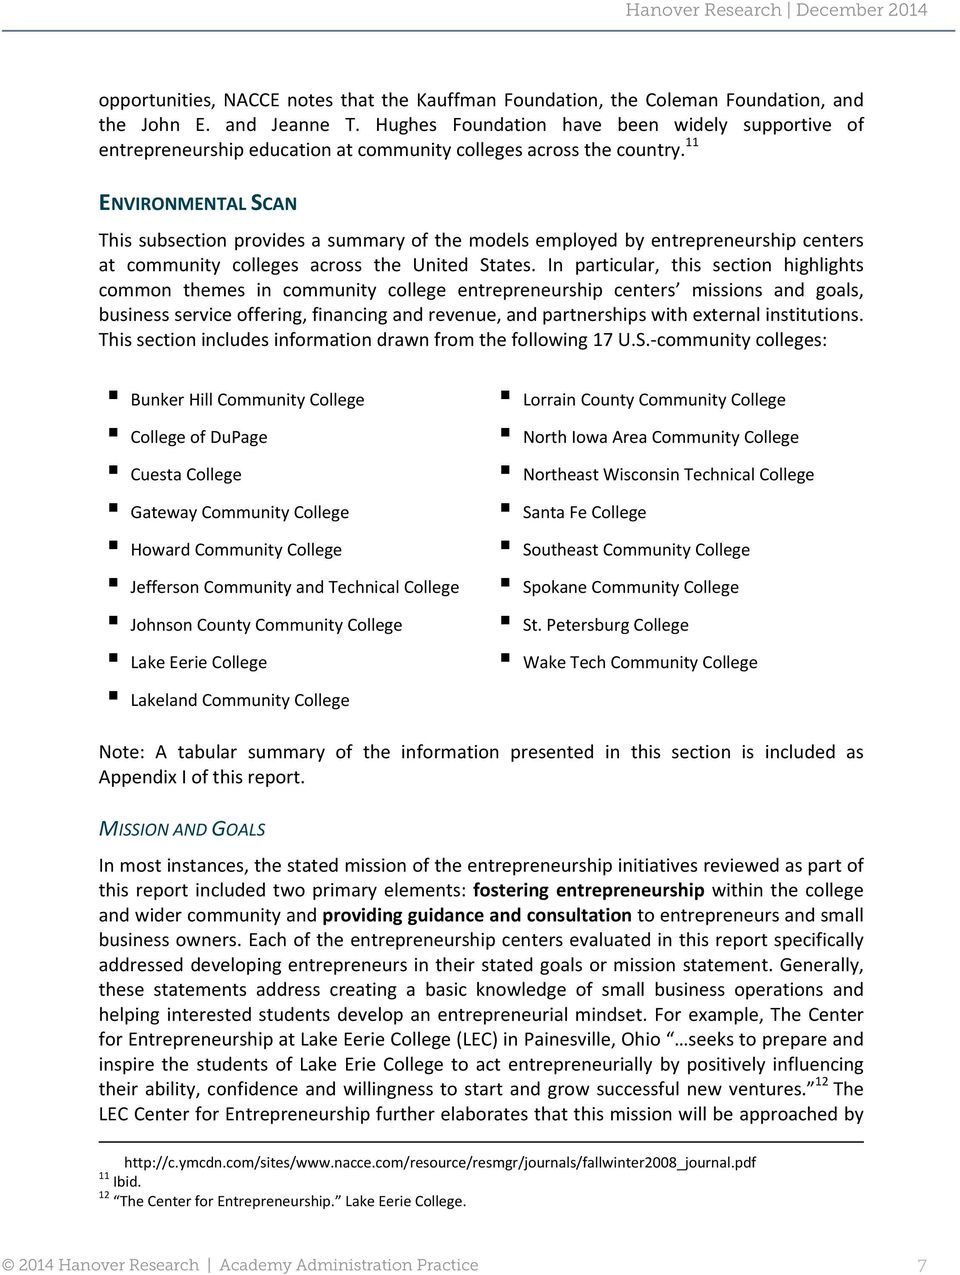 11 ENVIRONMENTAL SCAN This subsection provides a summary of the models employed by entrepreneurship centers at community colleges across the United States.